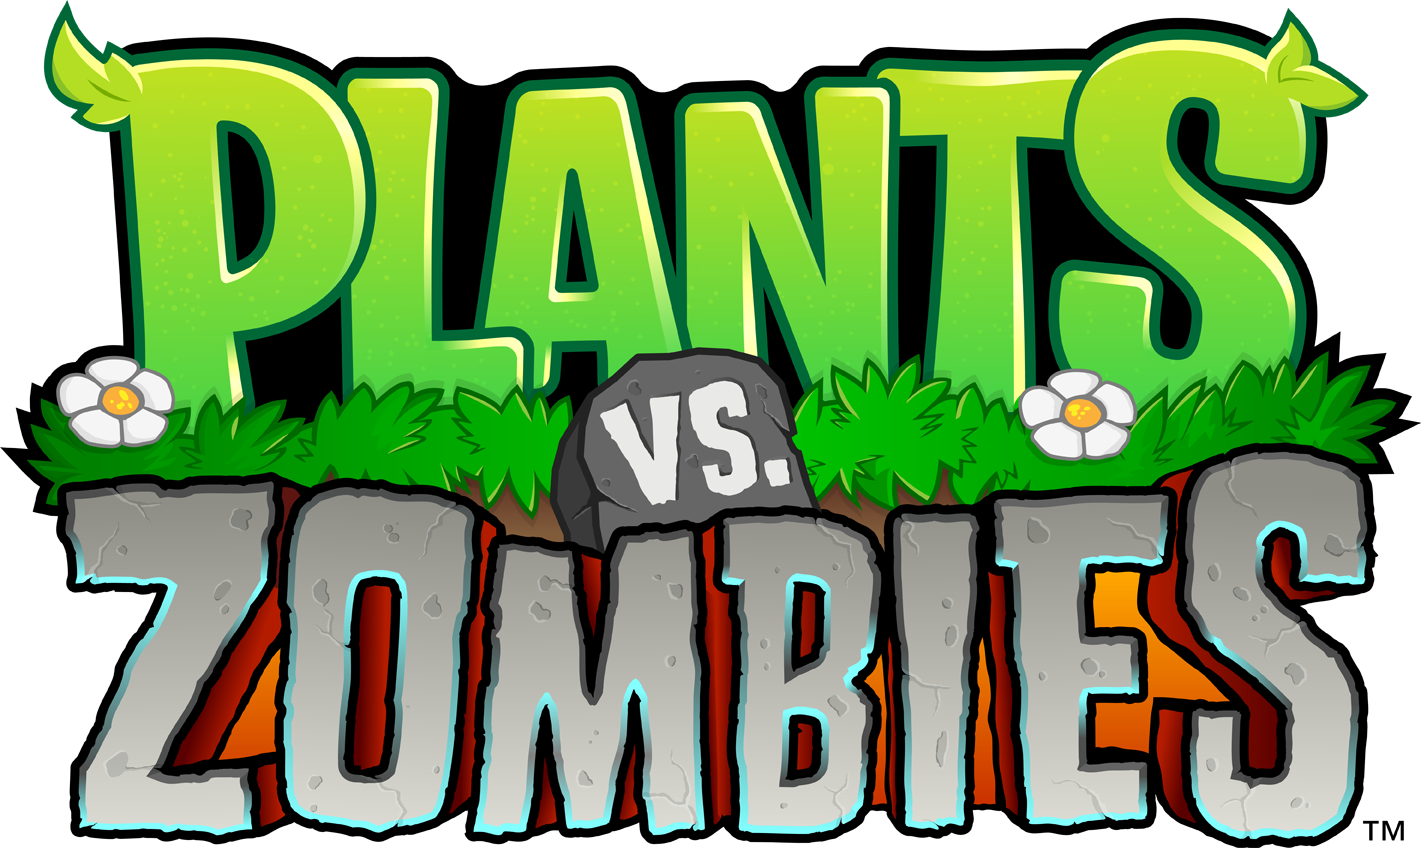 Plants vs zombies 2 logo png. Image pvz stacked rgb